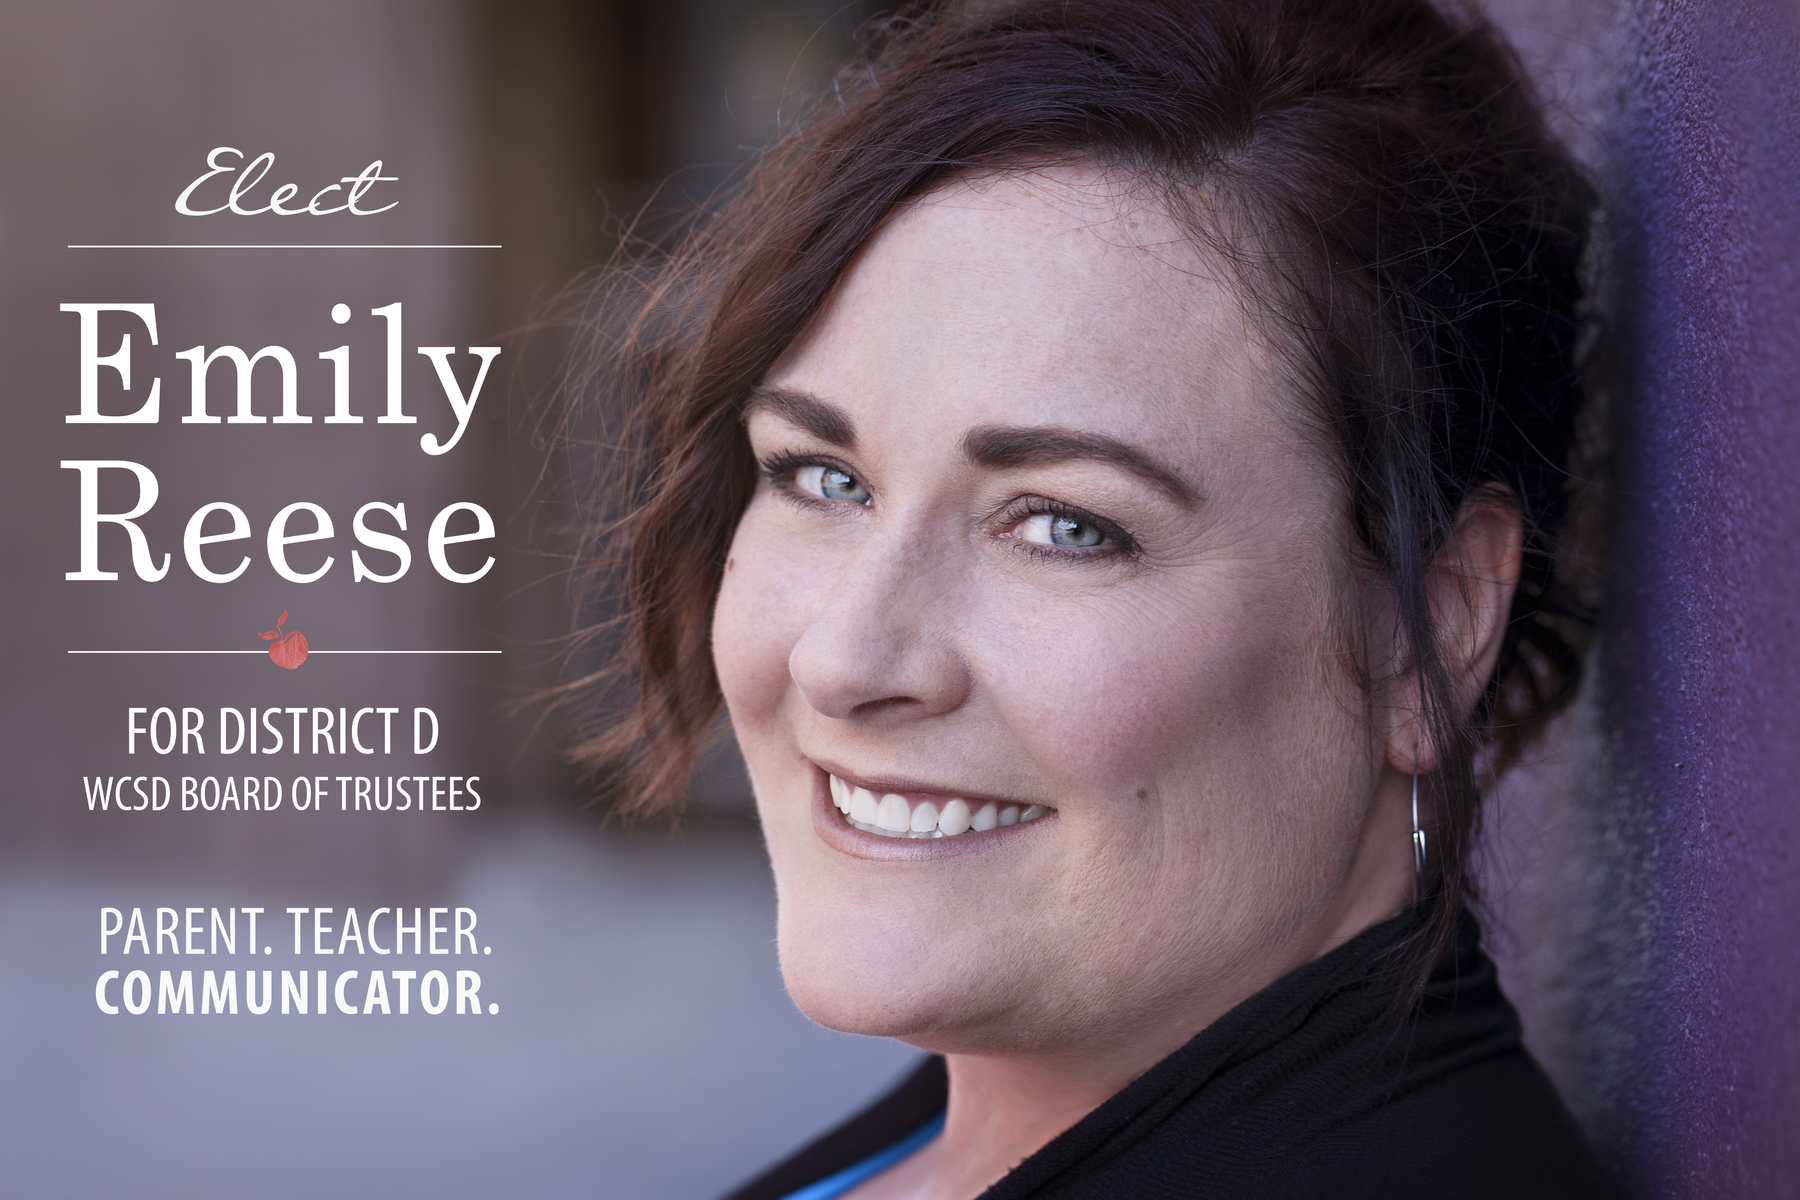 Friends to Elect Emily Reese: Emily Reese for WCSD Board of Trustees District D